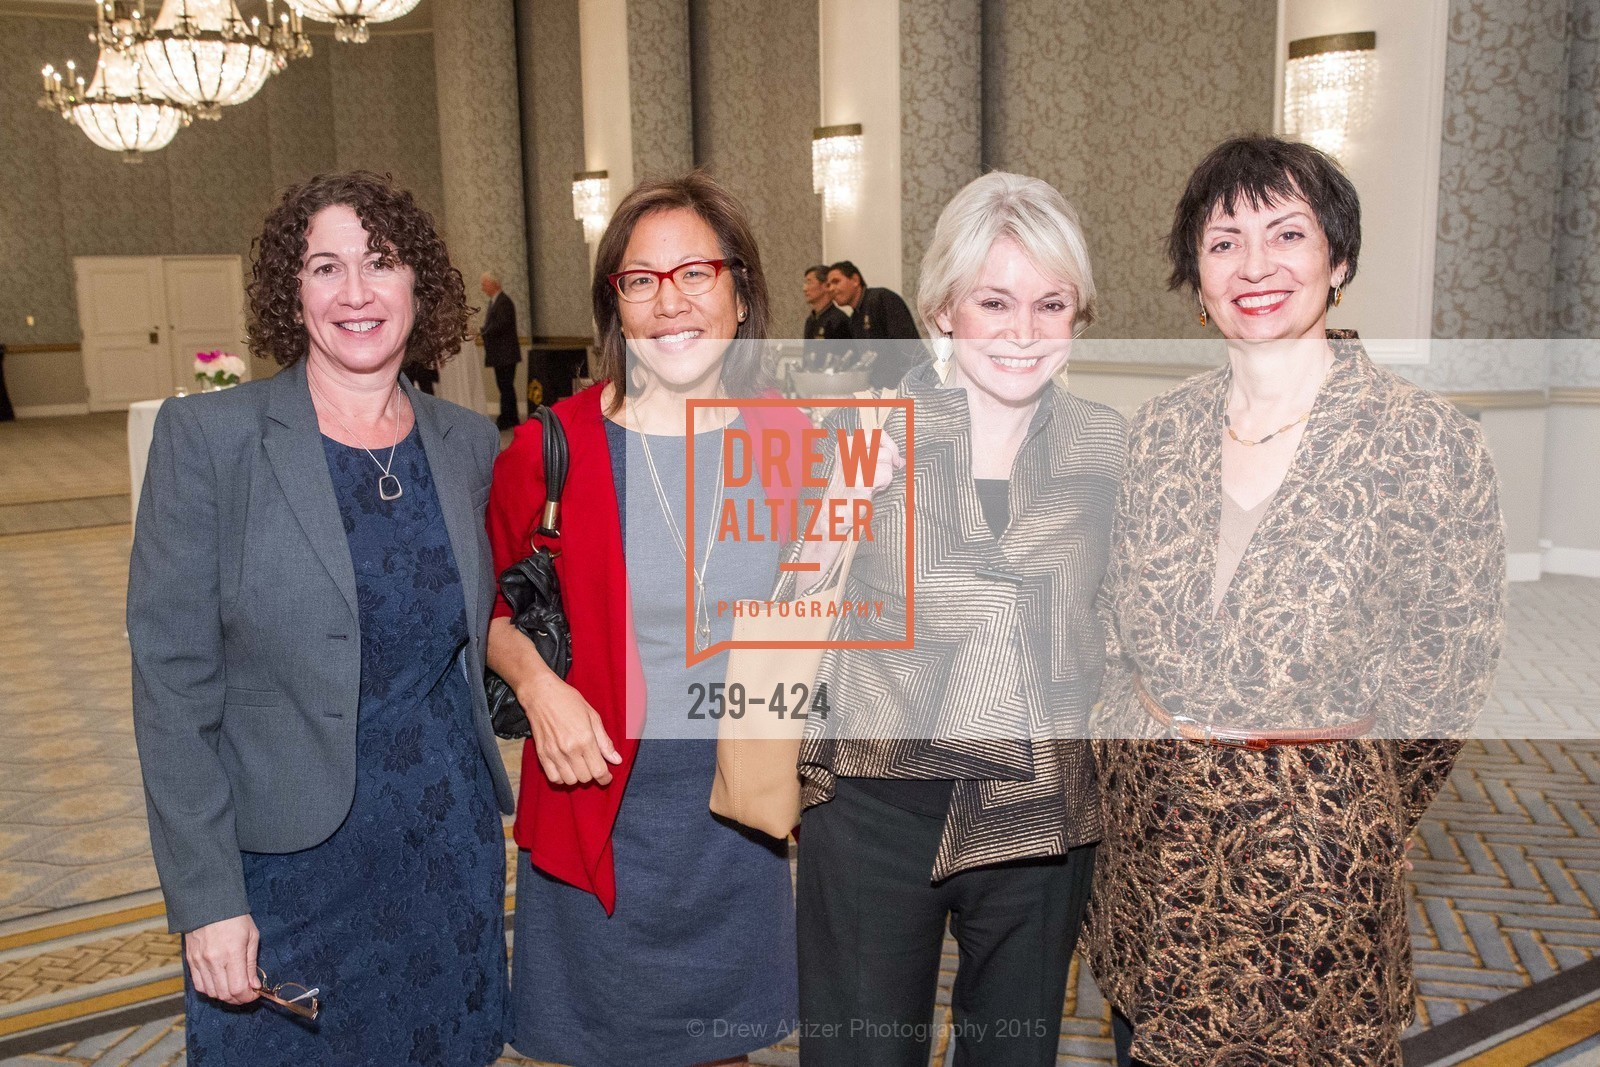 Liz Moress, Cora Yang, Marianne Mason, Sharon Page-Medrich, 2015 ARCS Foundation Scholar Awards Luncheon, The Fairmont San Francisco. 950 Mason St, October 29th, 2015,Drew Altizer, Drew Altizer Photography, full-service agency, private events, San Francisco photographer, photographer california